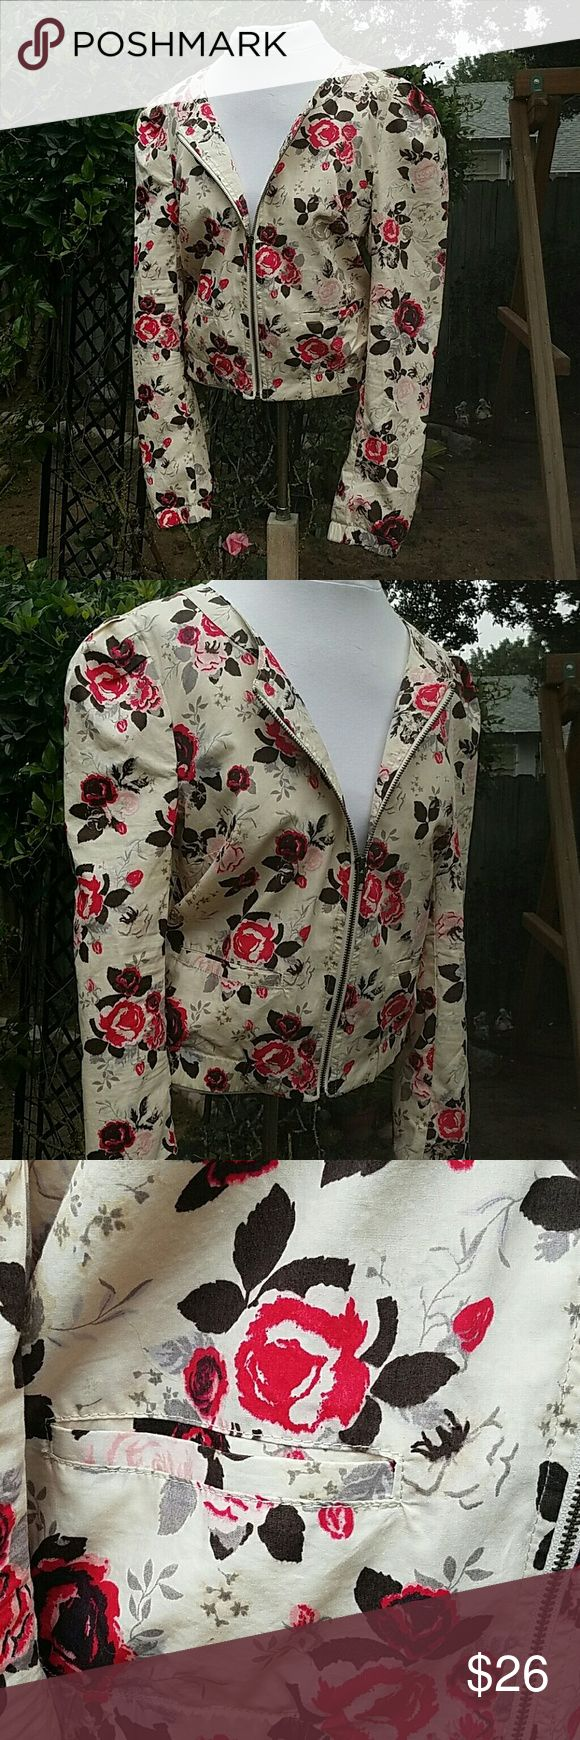 NWT H&M Floral Zip Up Blazer Bomber Jacket 10 Lightweight blazer with a bomber jacket feel to it Romantic floral is a good contrast to its more loose fitting silhouette  Elastic band on hem Zip up front Made by H&M size 10 Tag still attached although bottom half of tag has been removed In good condition H&M Jackets & Coats Blazers